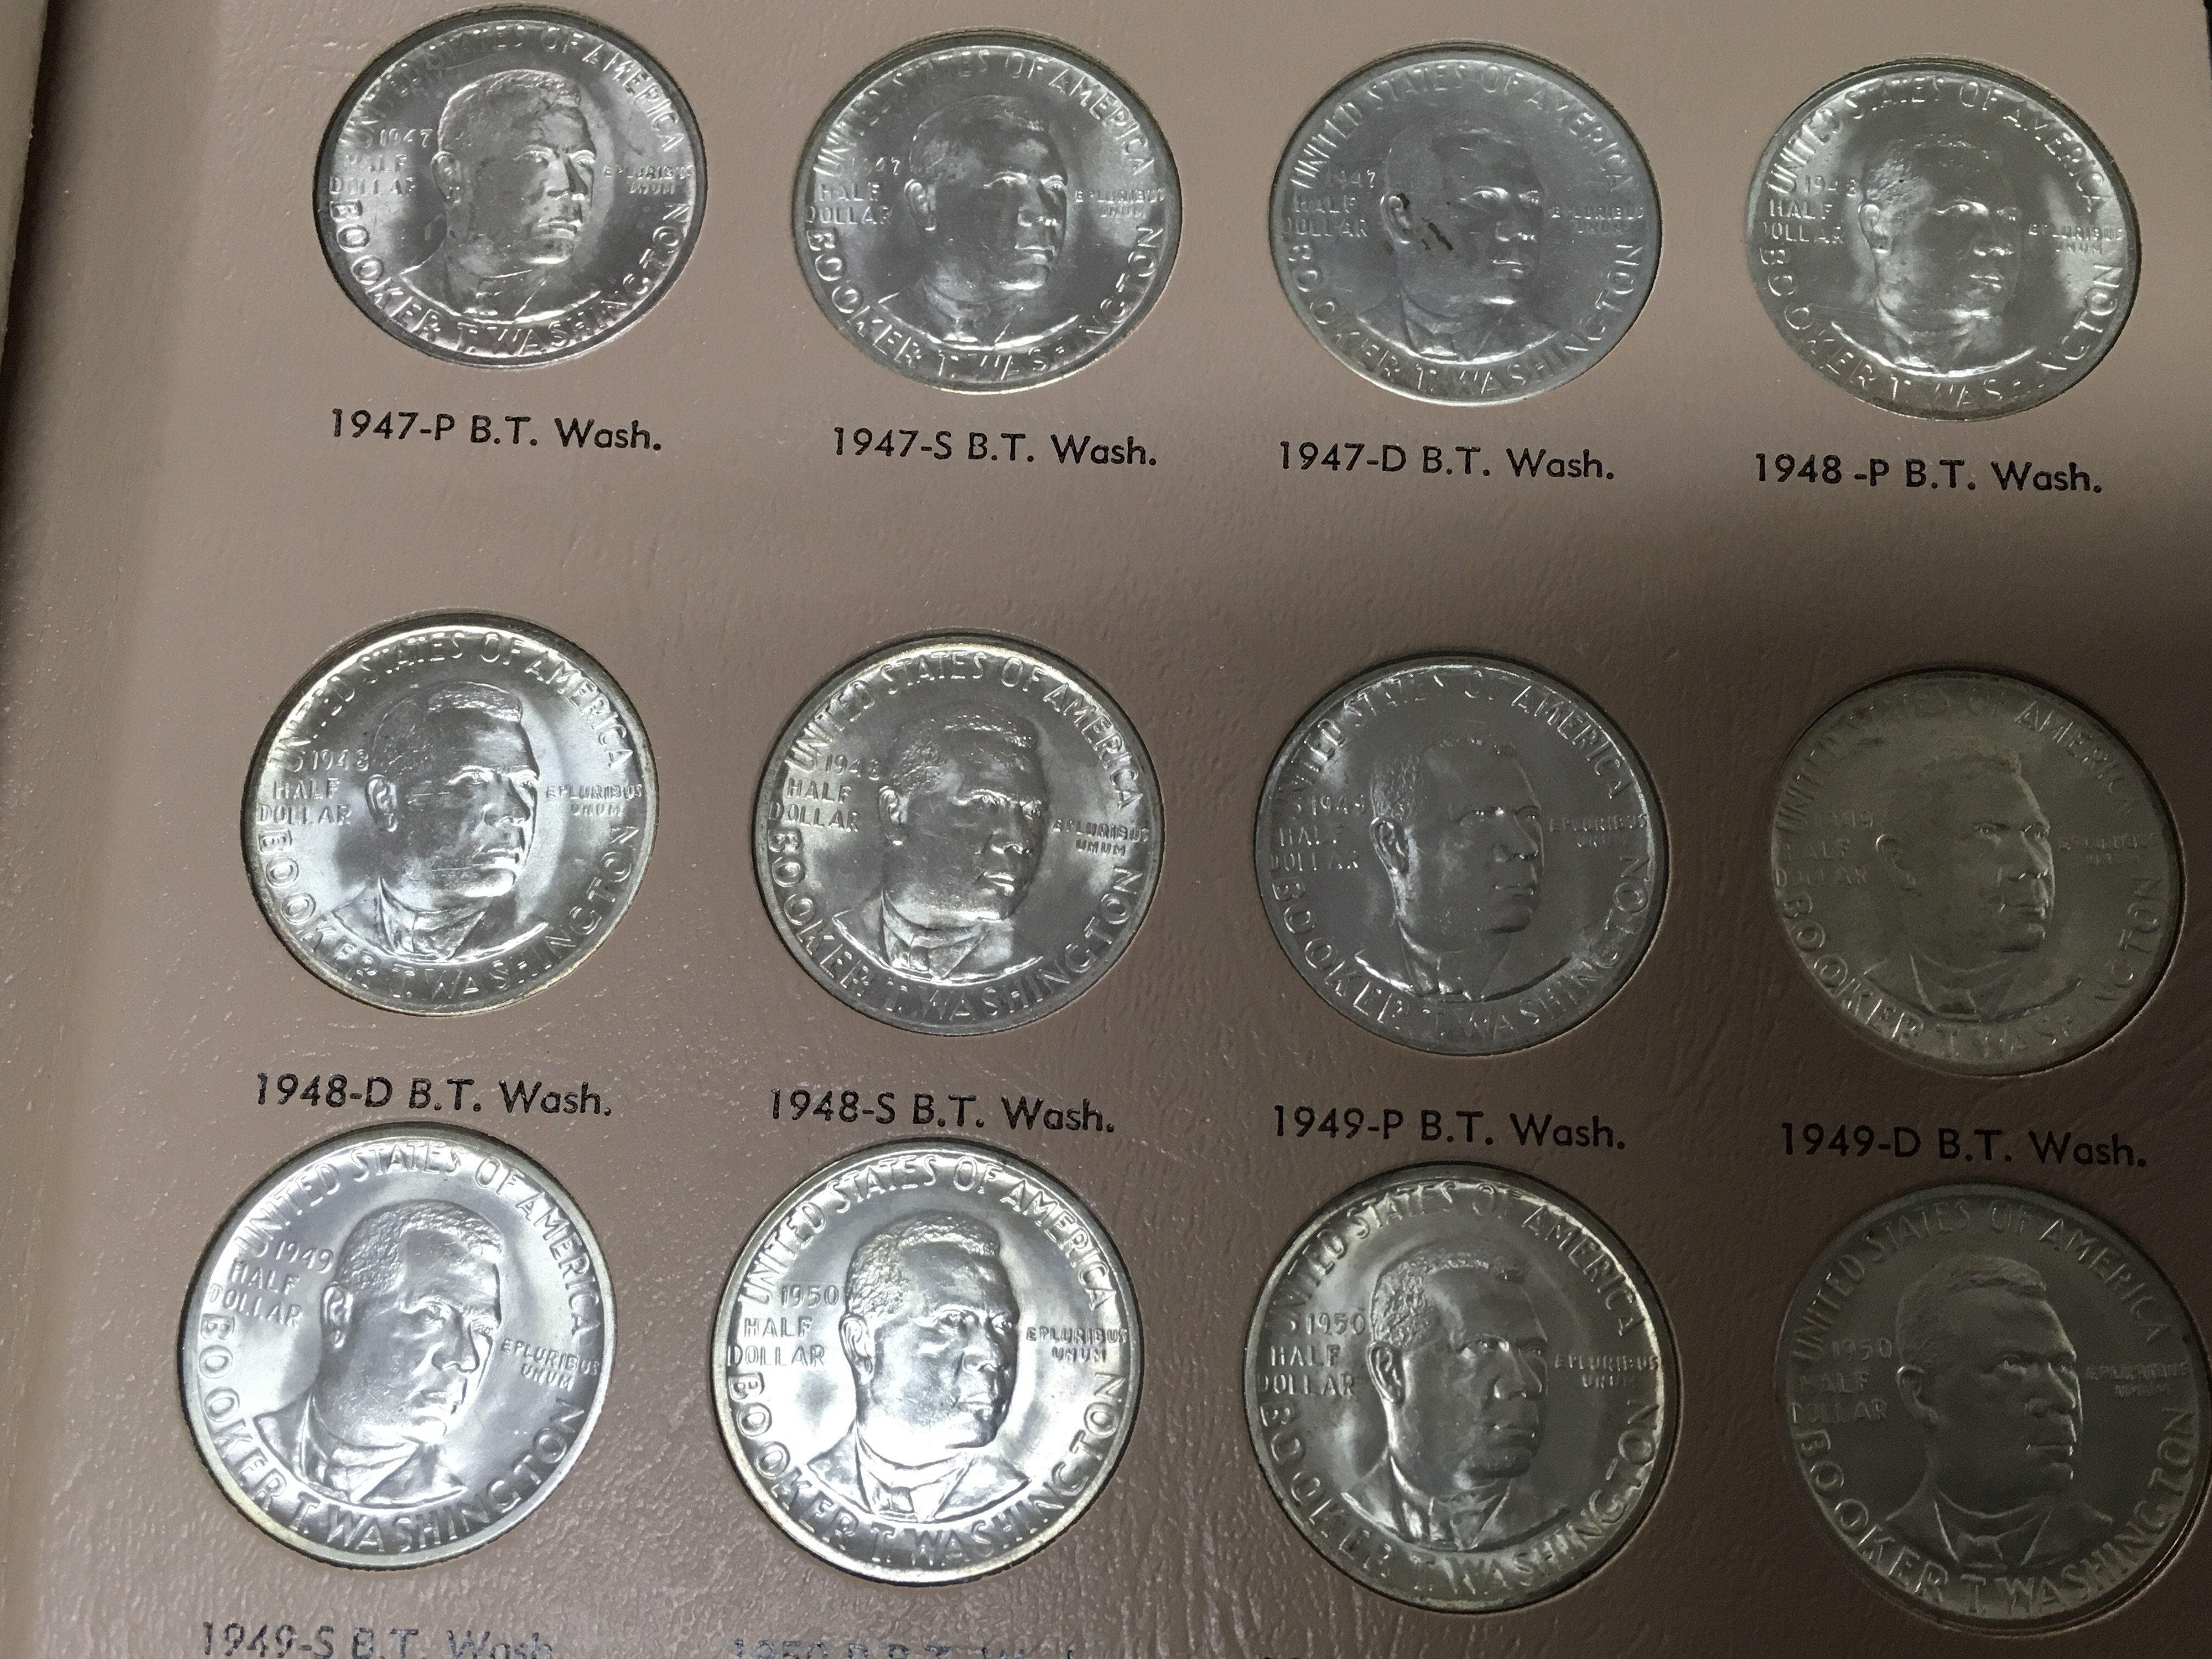 Lot 155 - An American commemorative coin set of half dollars